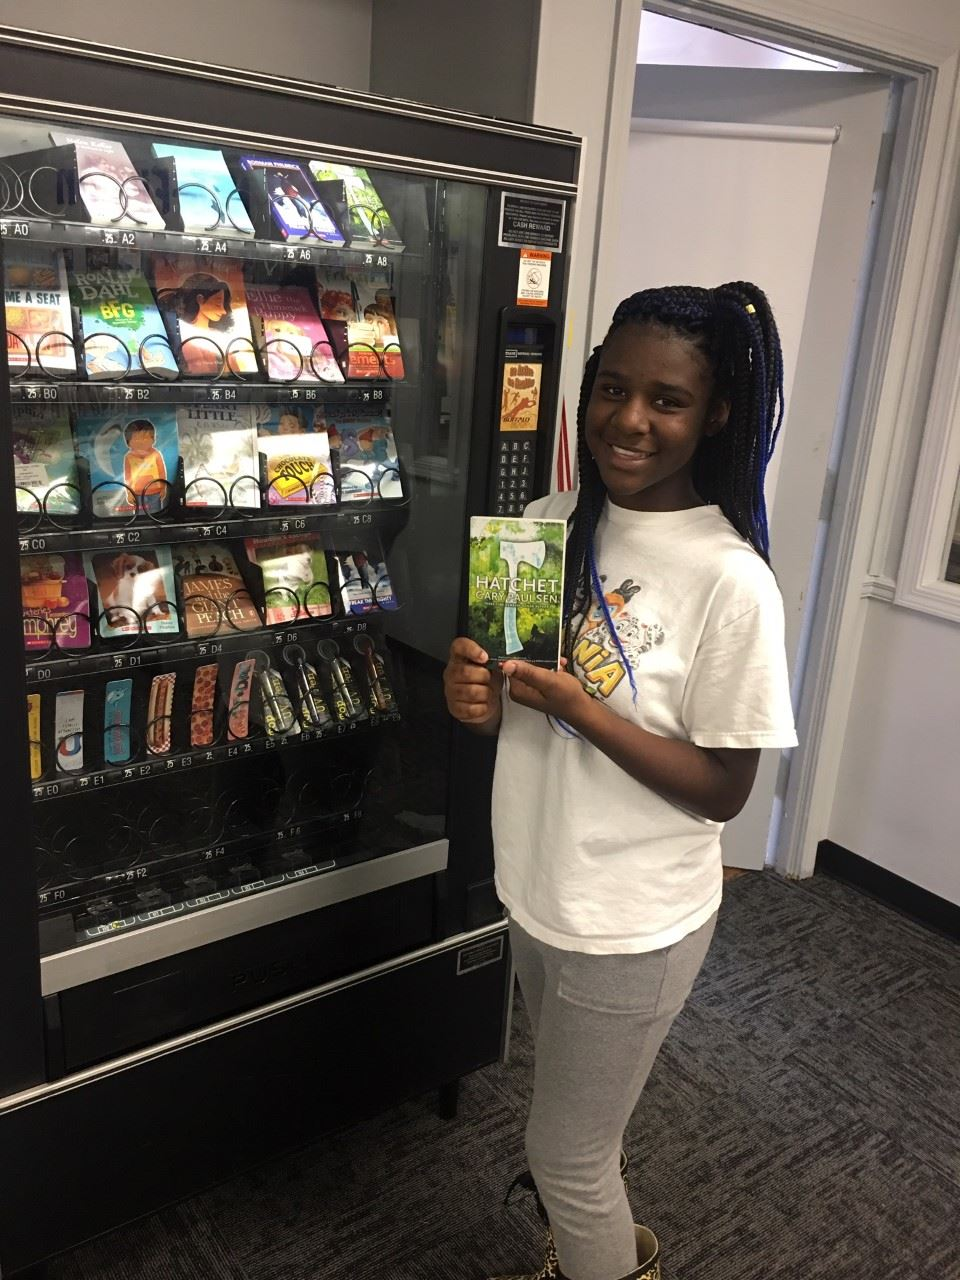 Vending Machine in the Library